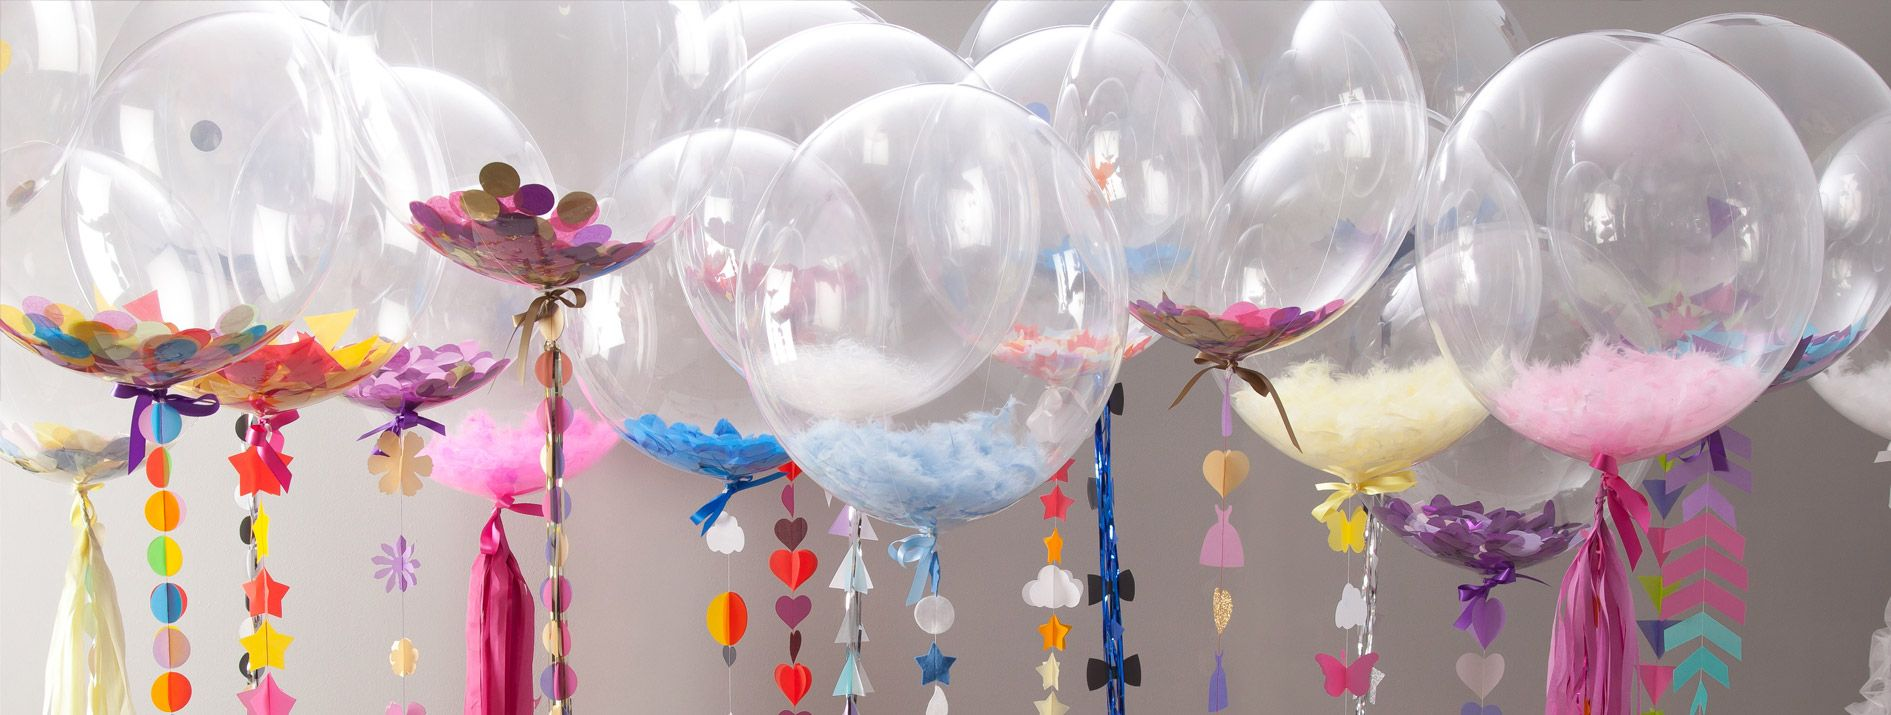 Helium Balloons Delivered Next Day